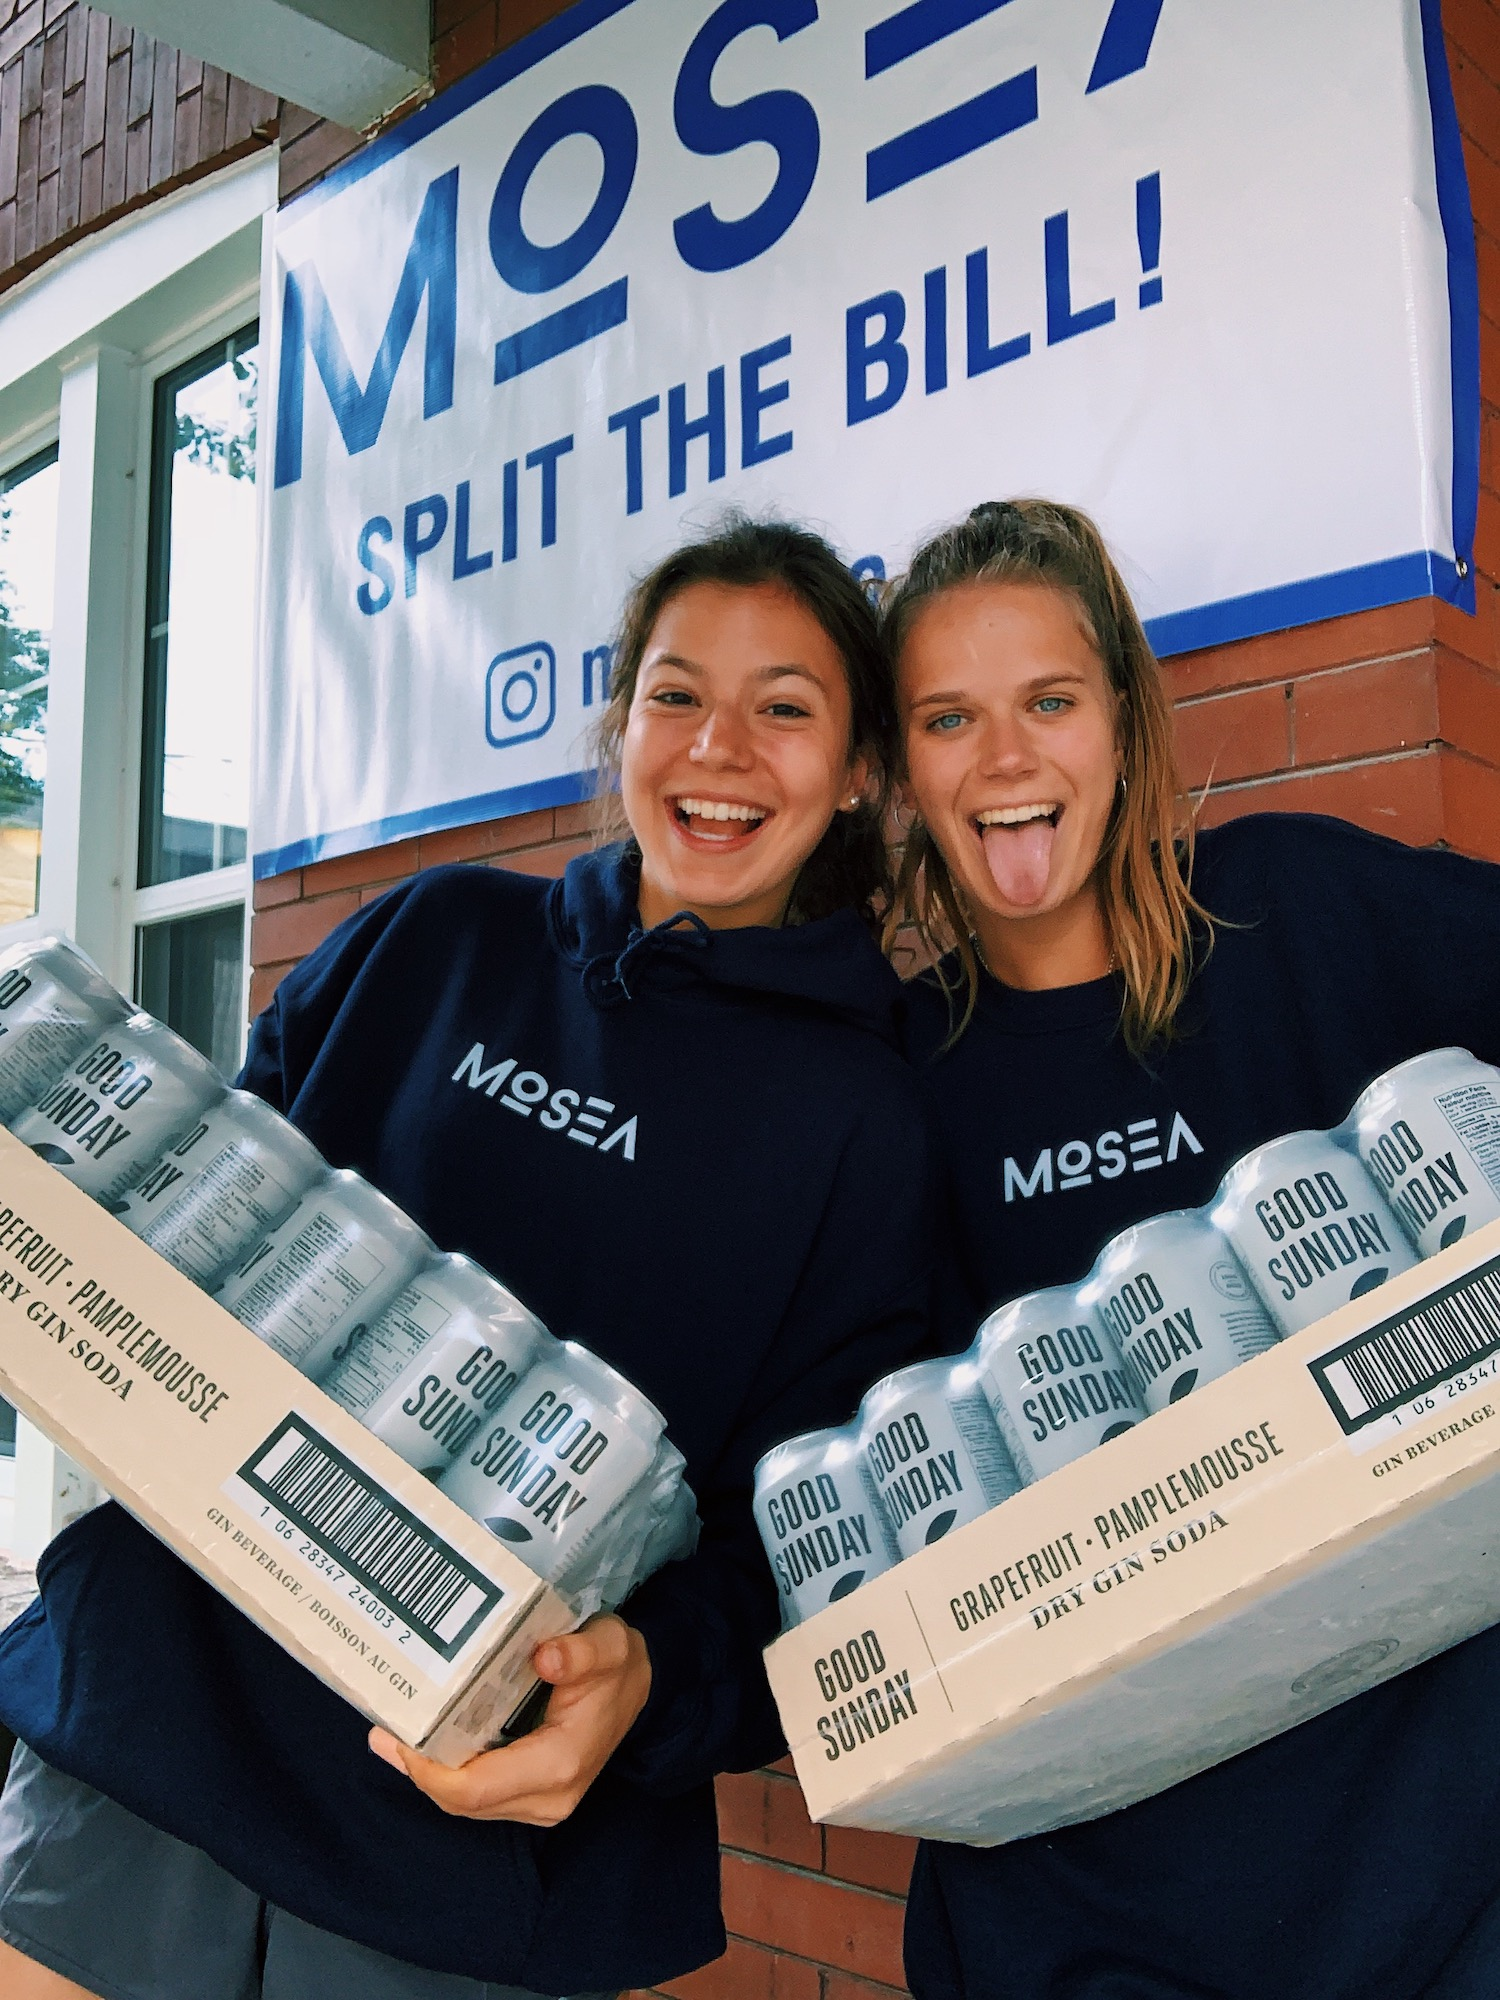 Mosea team members carrying cases of Good Sunday cans